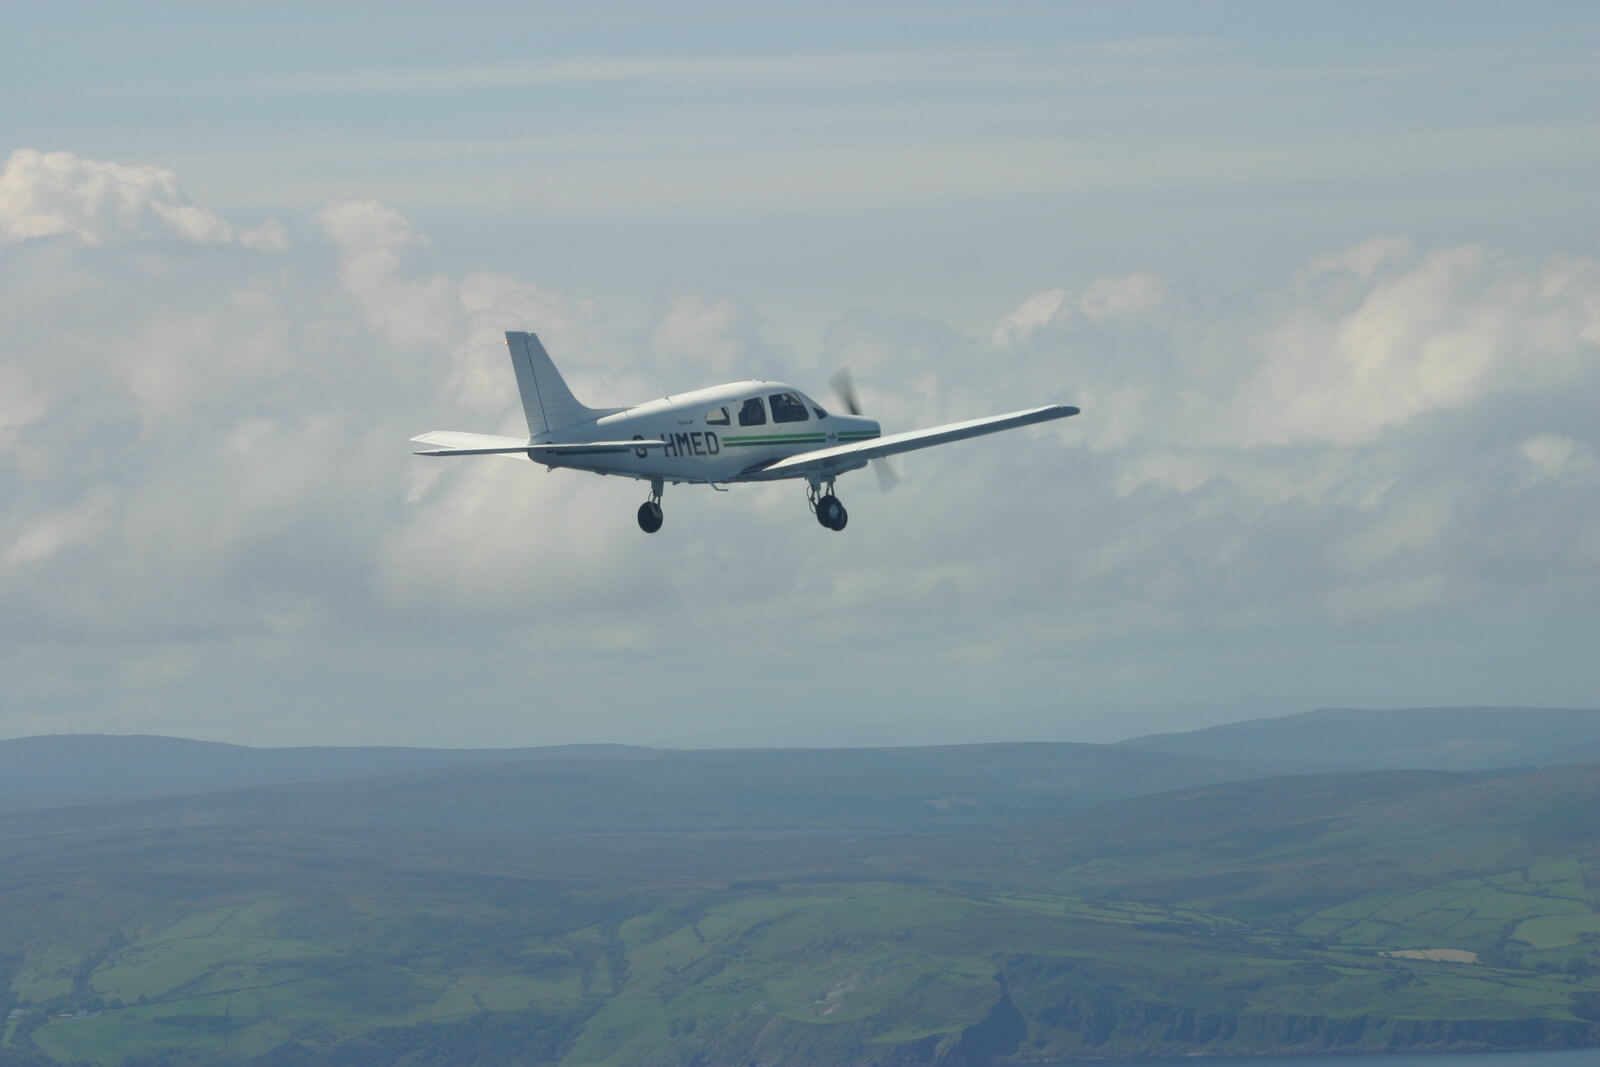 Flying experience with Eglinton flying club